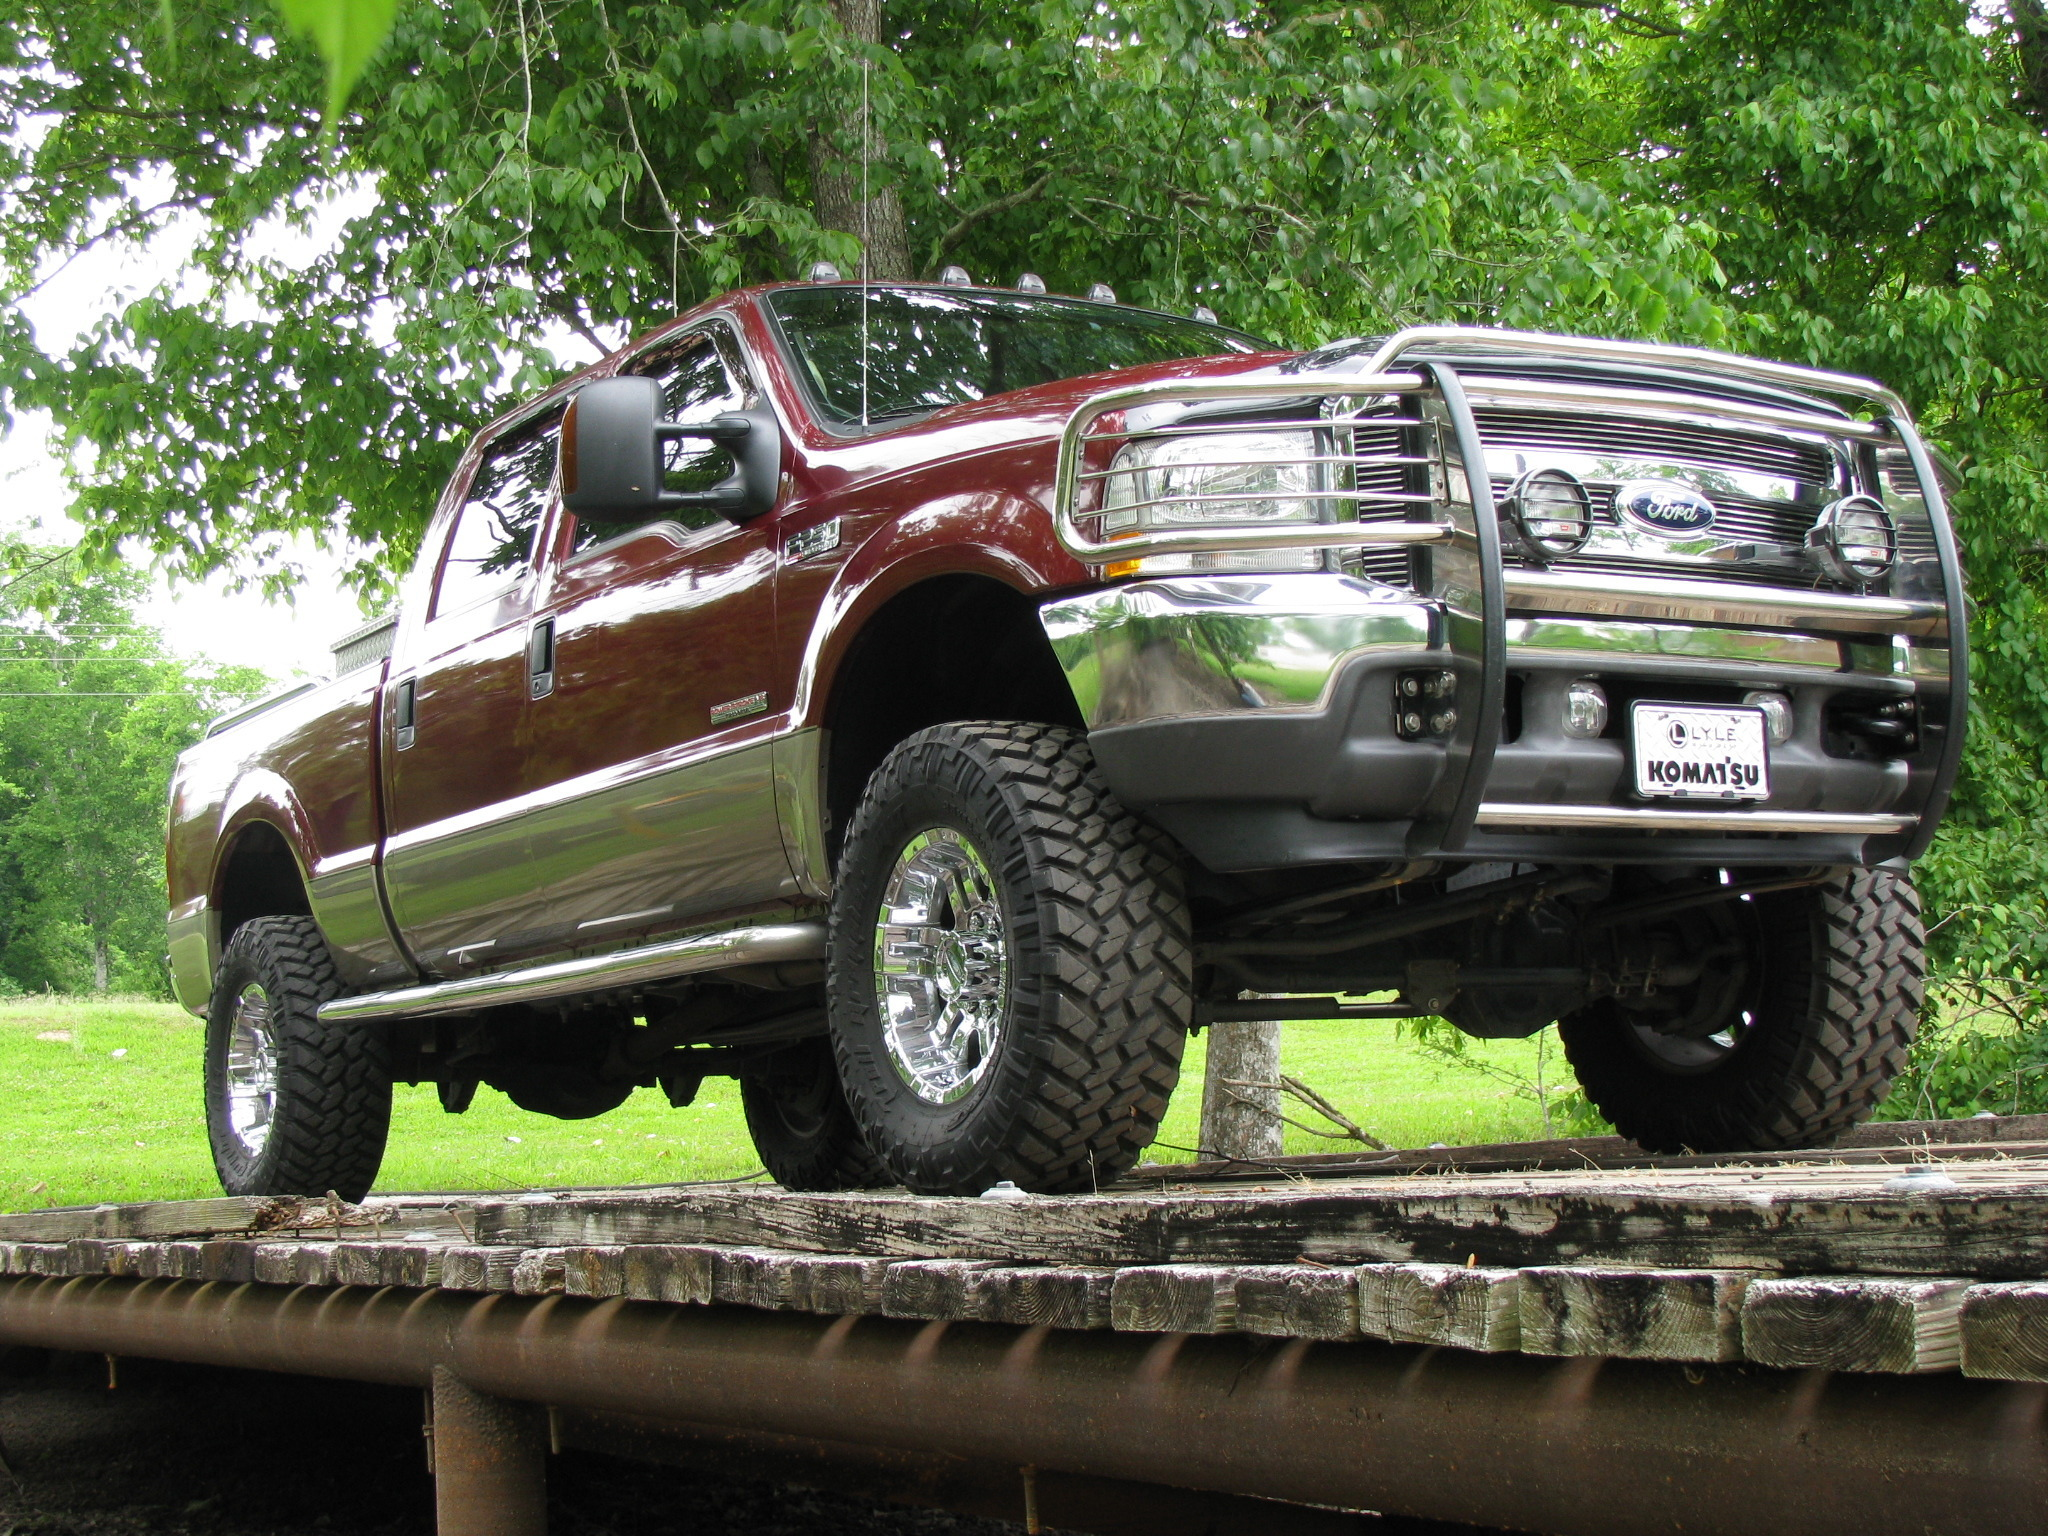 Ken's 2004 Ford F350 Super Duty Crew Cab